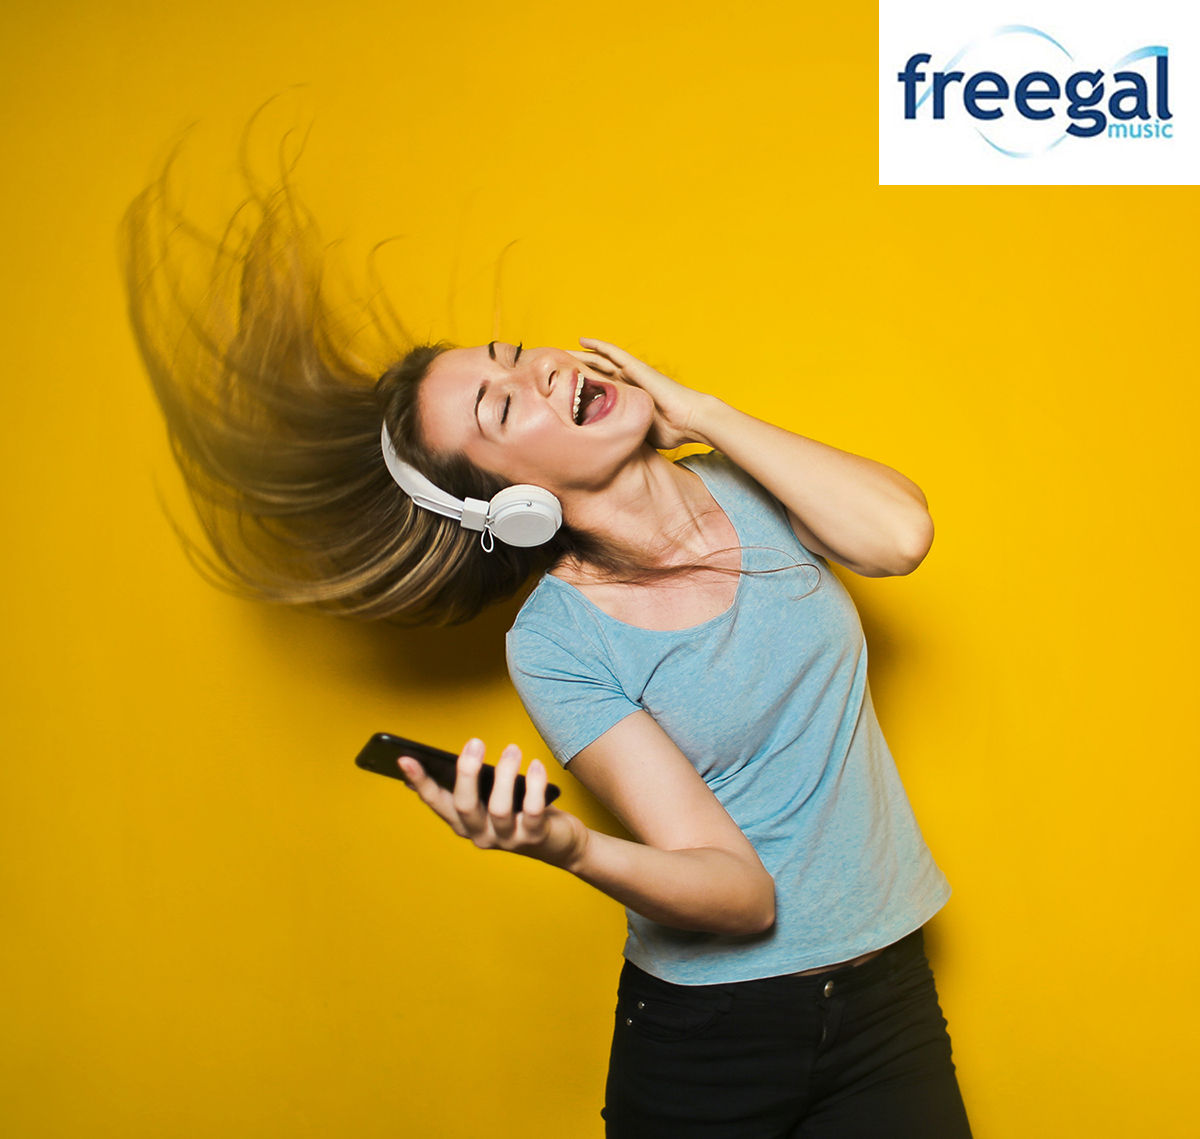 Listen to music for free with the Freegal app image